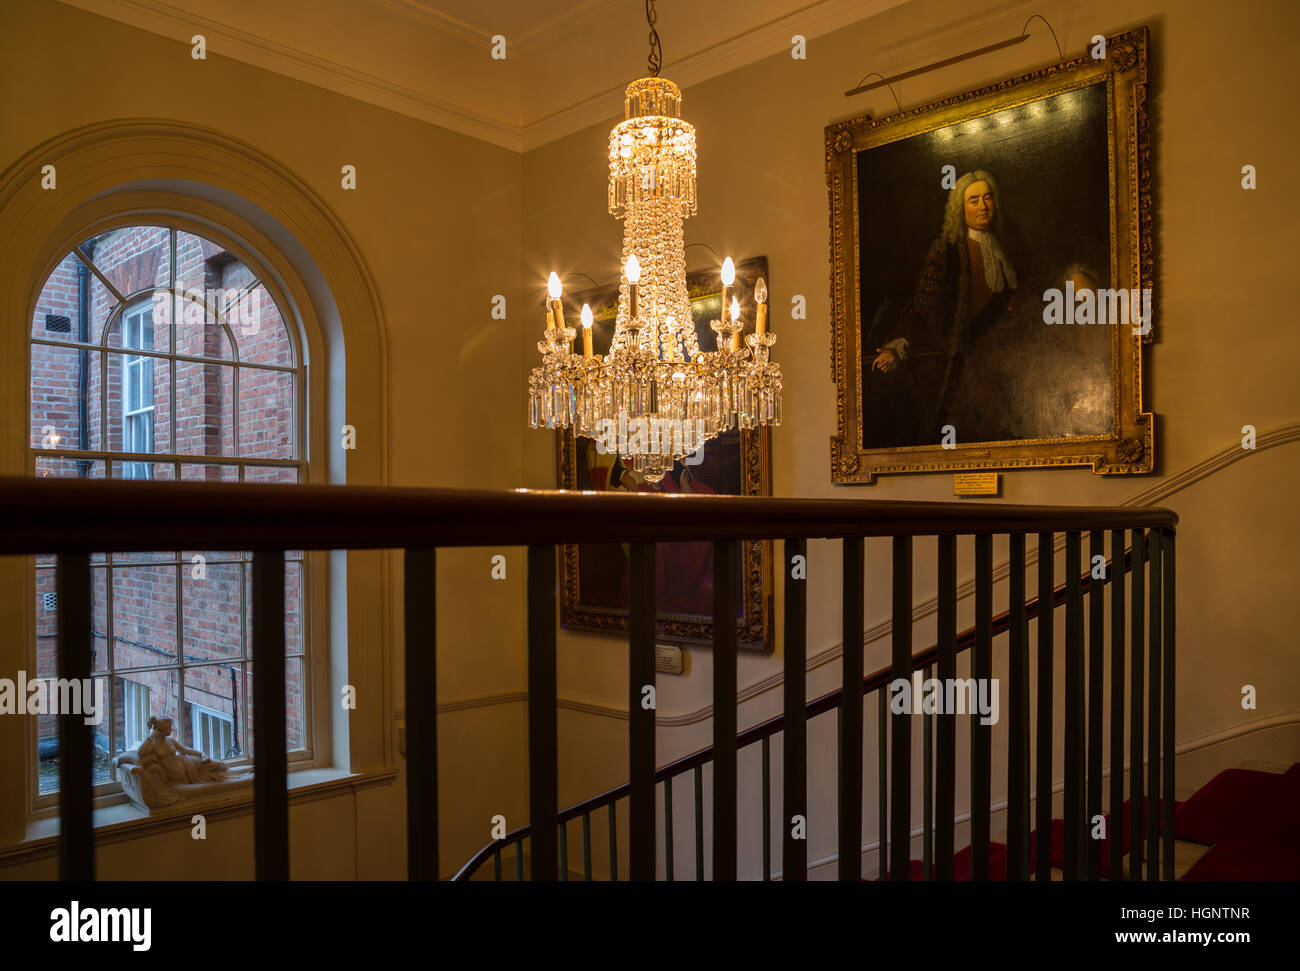 English Country House Interior Decoration   Stock Image